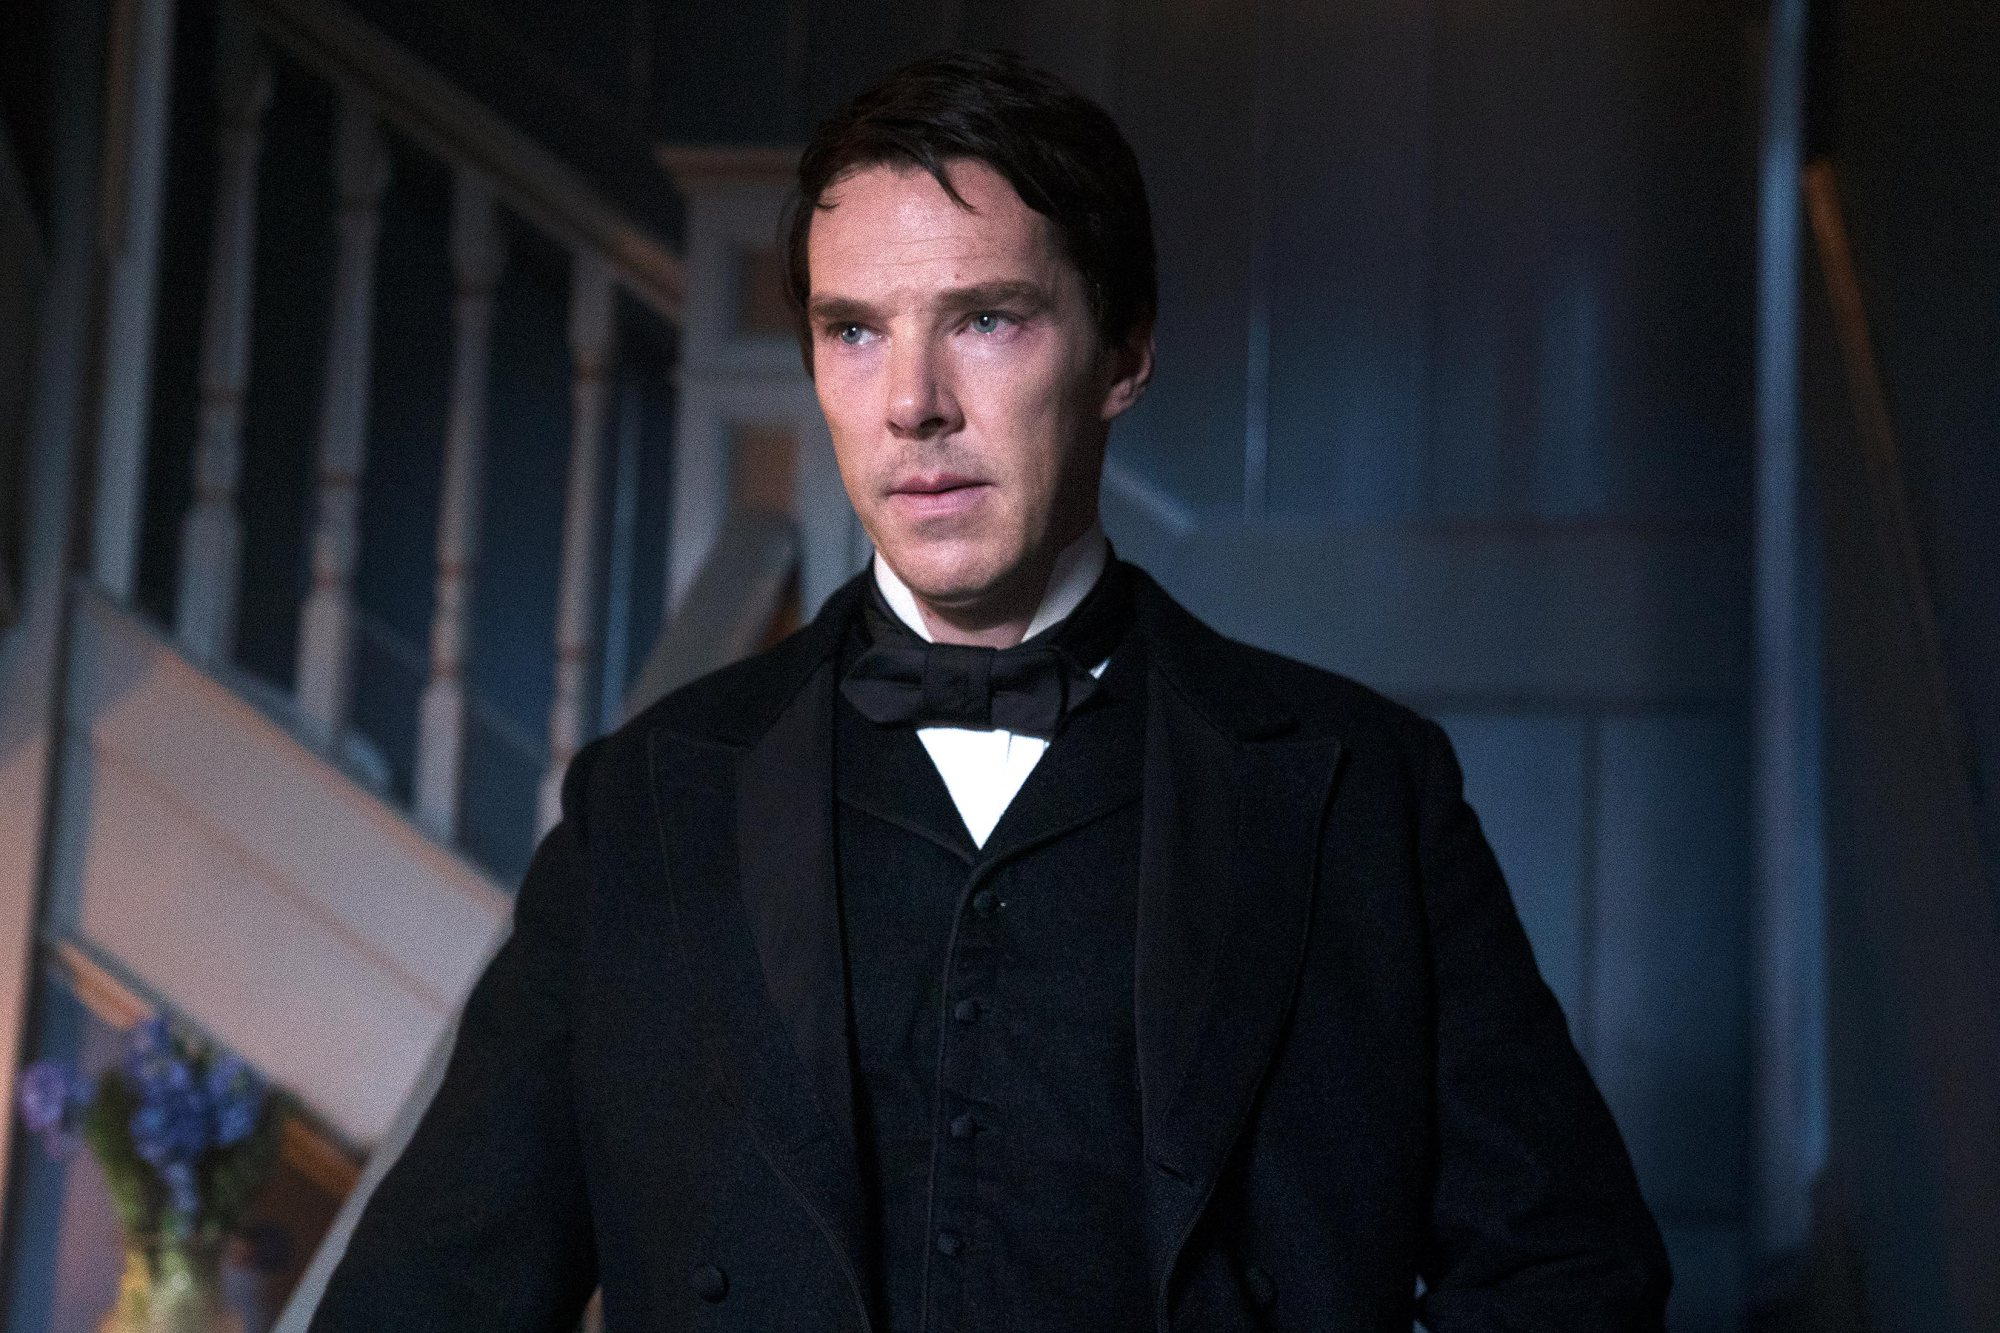 *FIRST LOOK* Benedict Cumberbatch as Thomas Edison CR: The Weinstein Co.